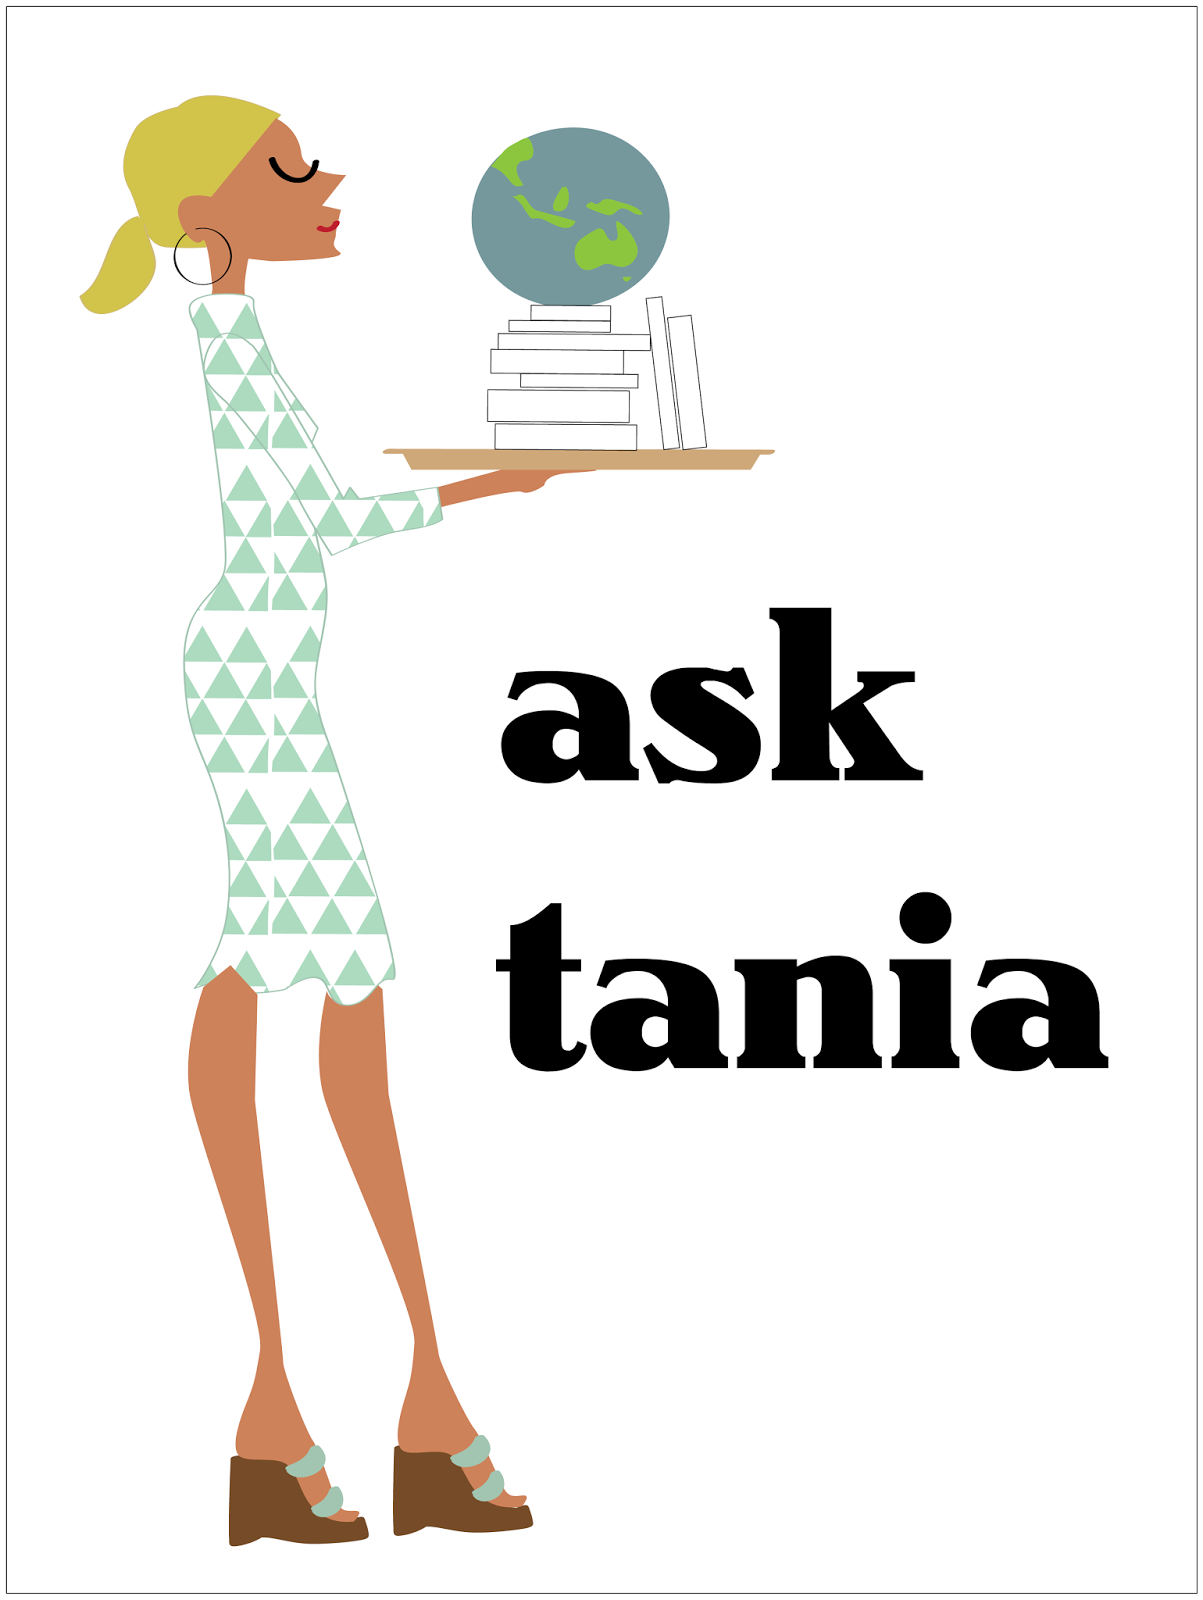 http://www.taniamccartney.blogspot.com.au/2014/02/ask-tania.html